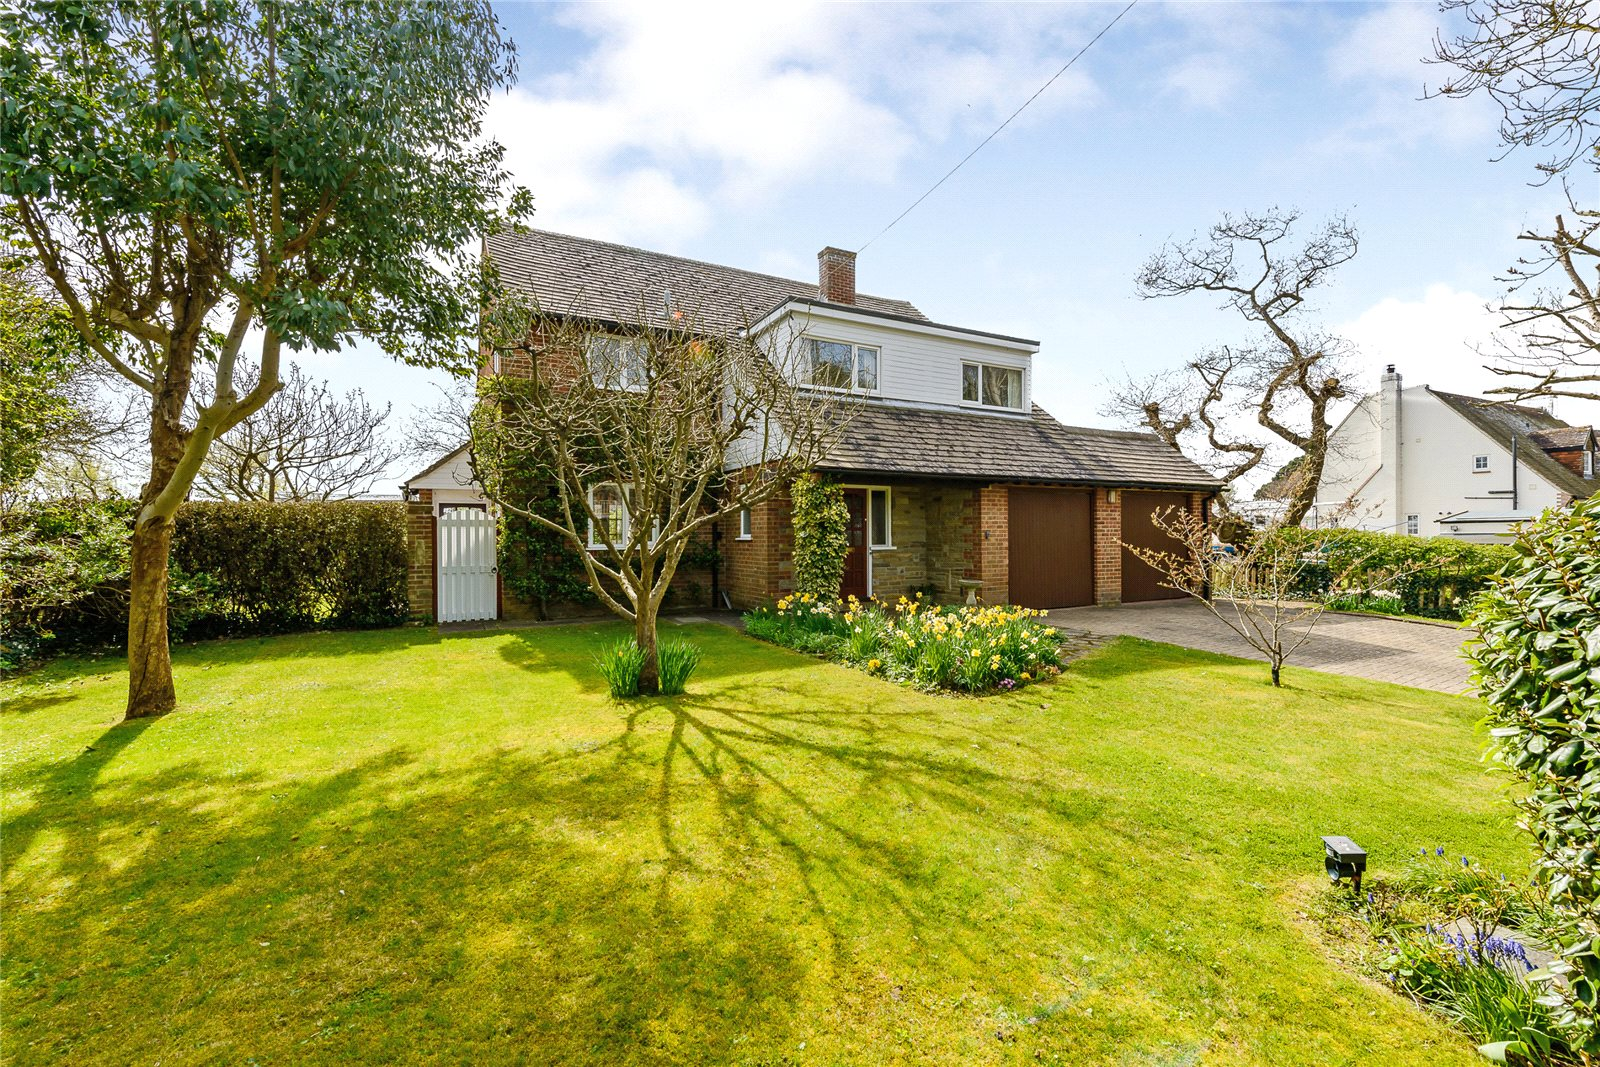 Частный дом для того Продажа на Elms Lane, West Wittering, Chichester, West Sussex, PO20 Chichester, Англия